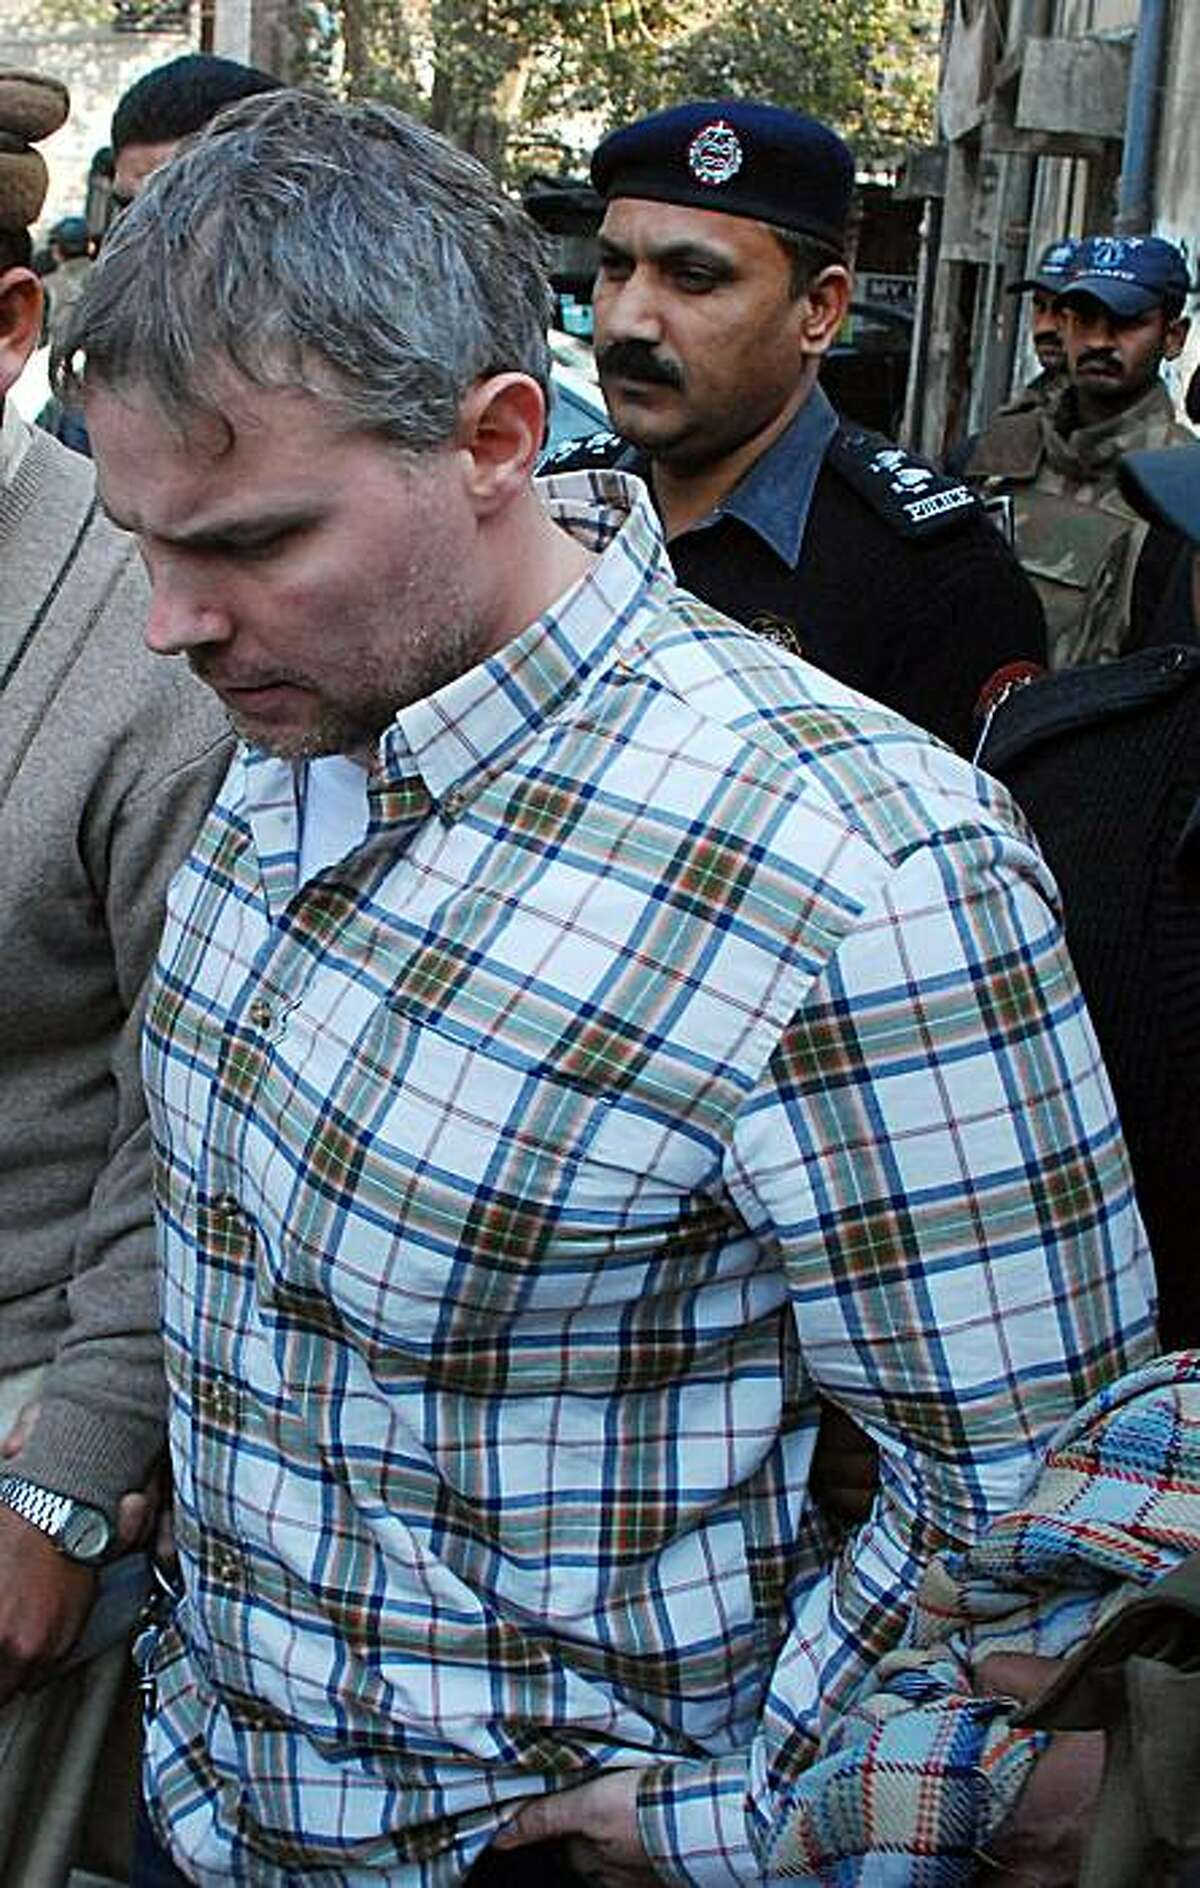 Pakistani police escorts arrested US national Raymond Davis to a court in Lahore on January 28, 2011. An American man was being held at a Pakistan police station on double murder charges, police said, a day after he shot dead two men on a motorcycle in what he said was self-defence.